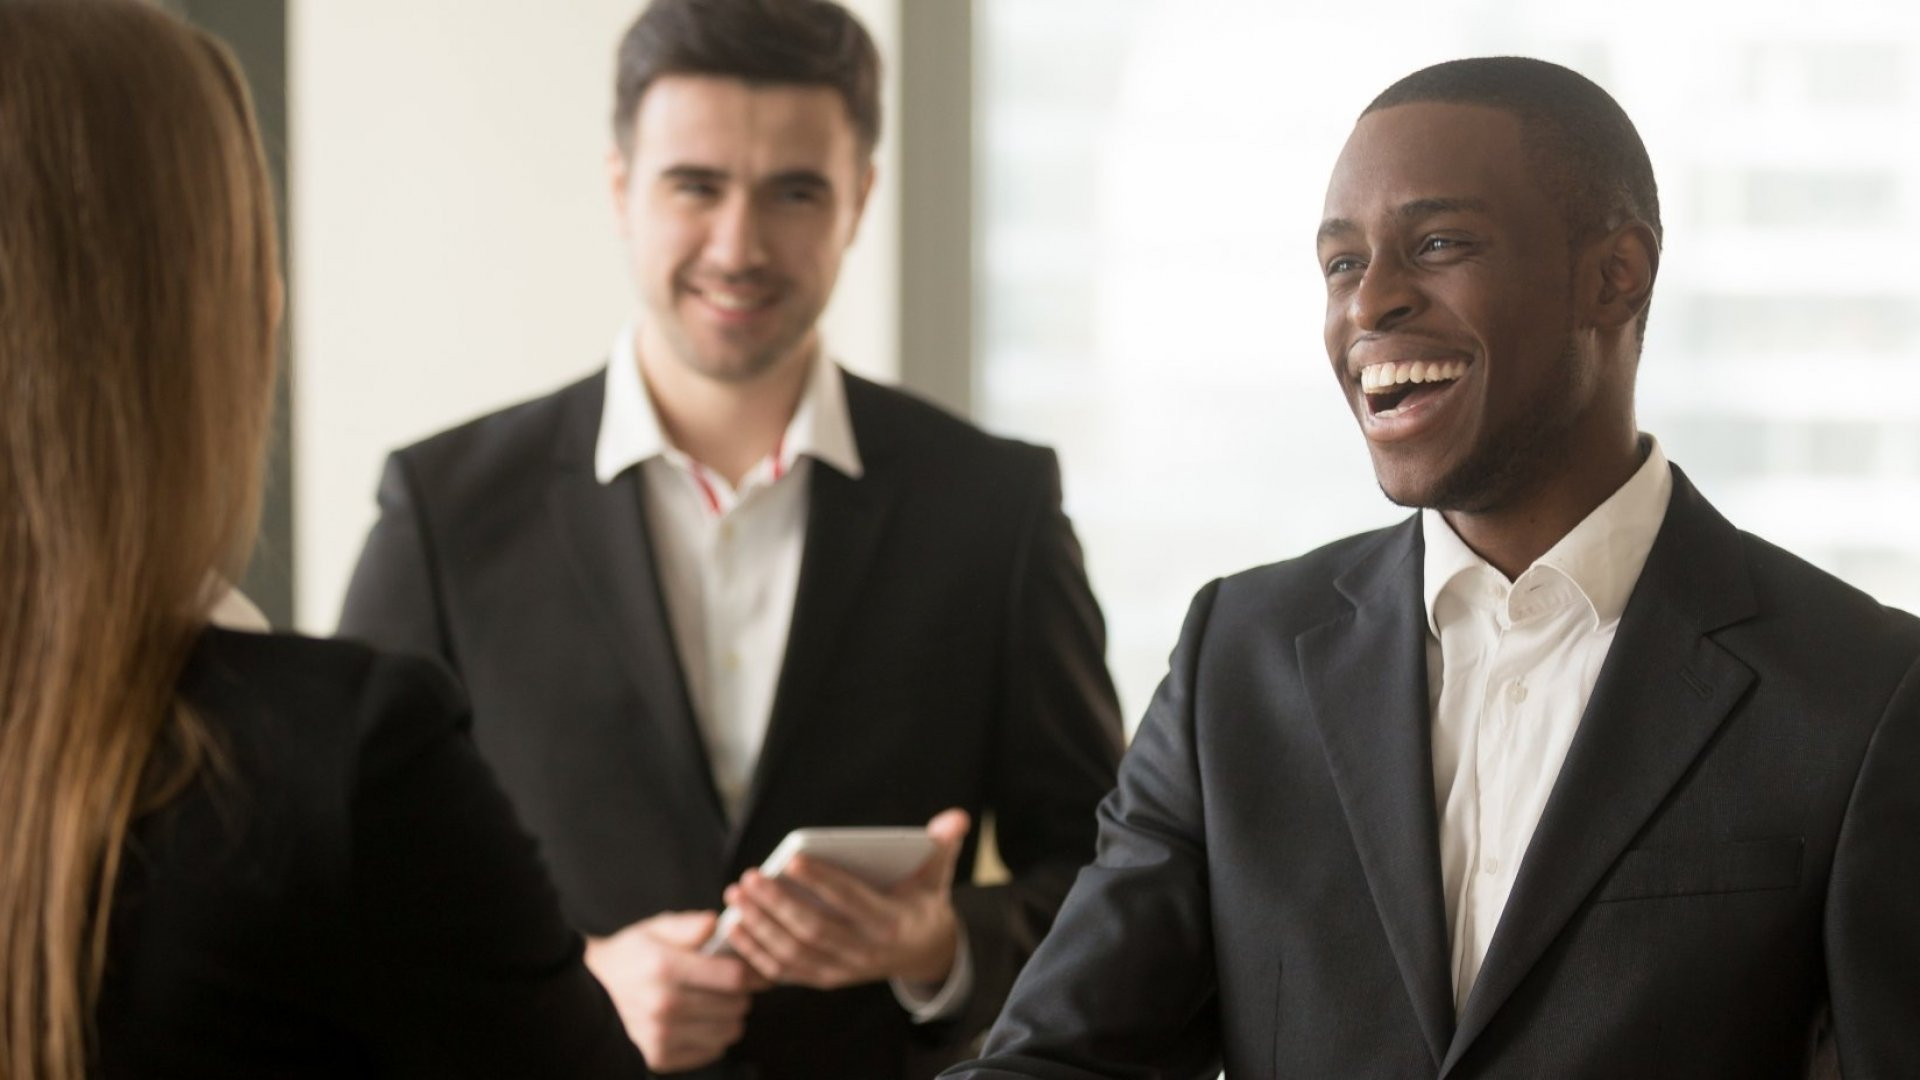 Want to Recruit and Retain the Very Best People? Here's How